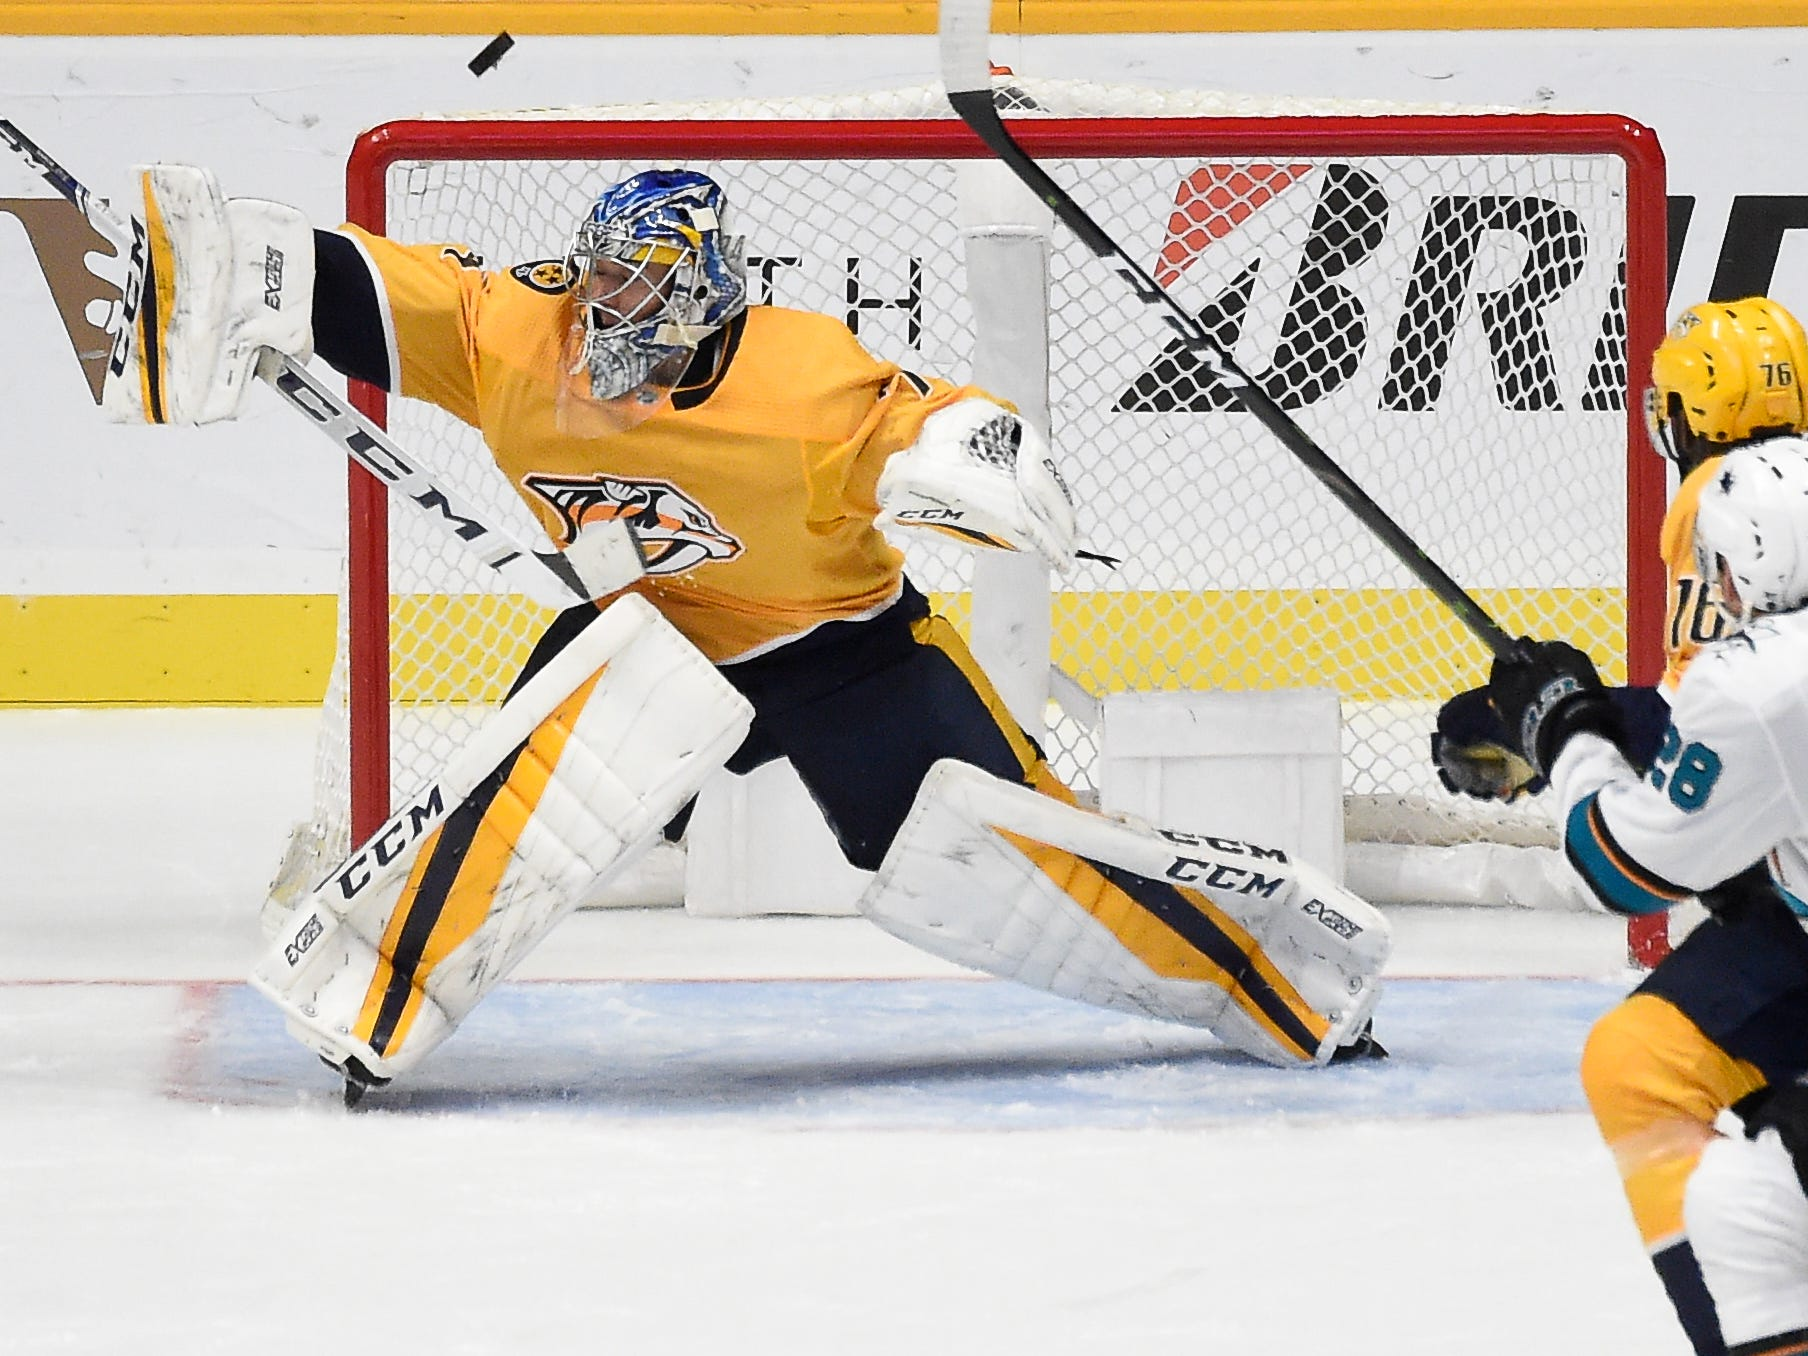 Predators goaltender Juuse Saros (74) blocks a shot on goal against the Sharks during the third period at Bridgestone Arena Tuesday, Oct. 23, 2018, in Nashville, Tenn.